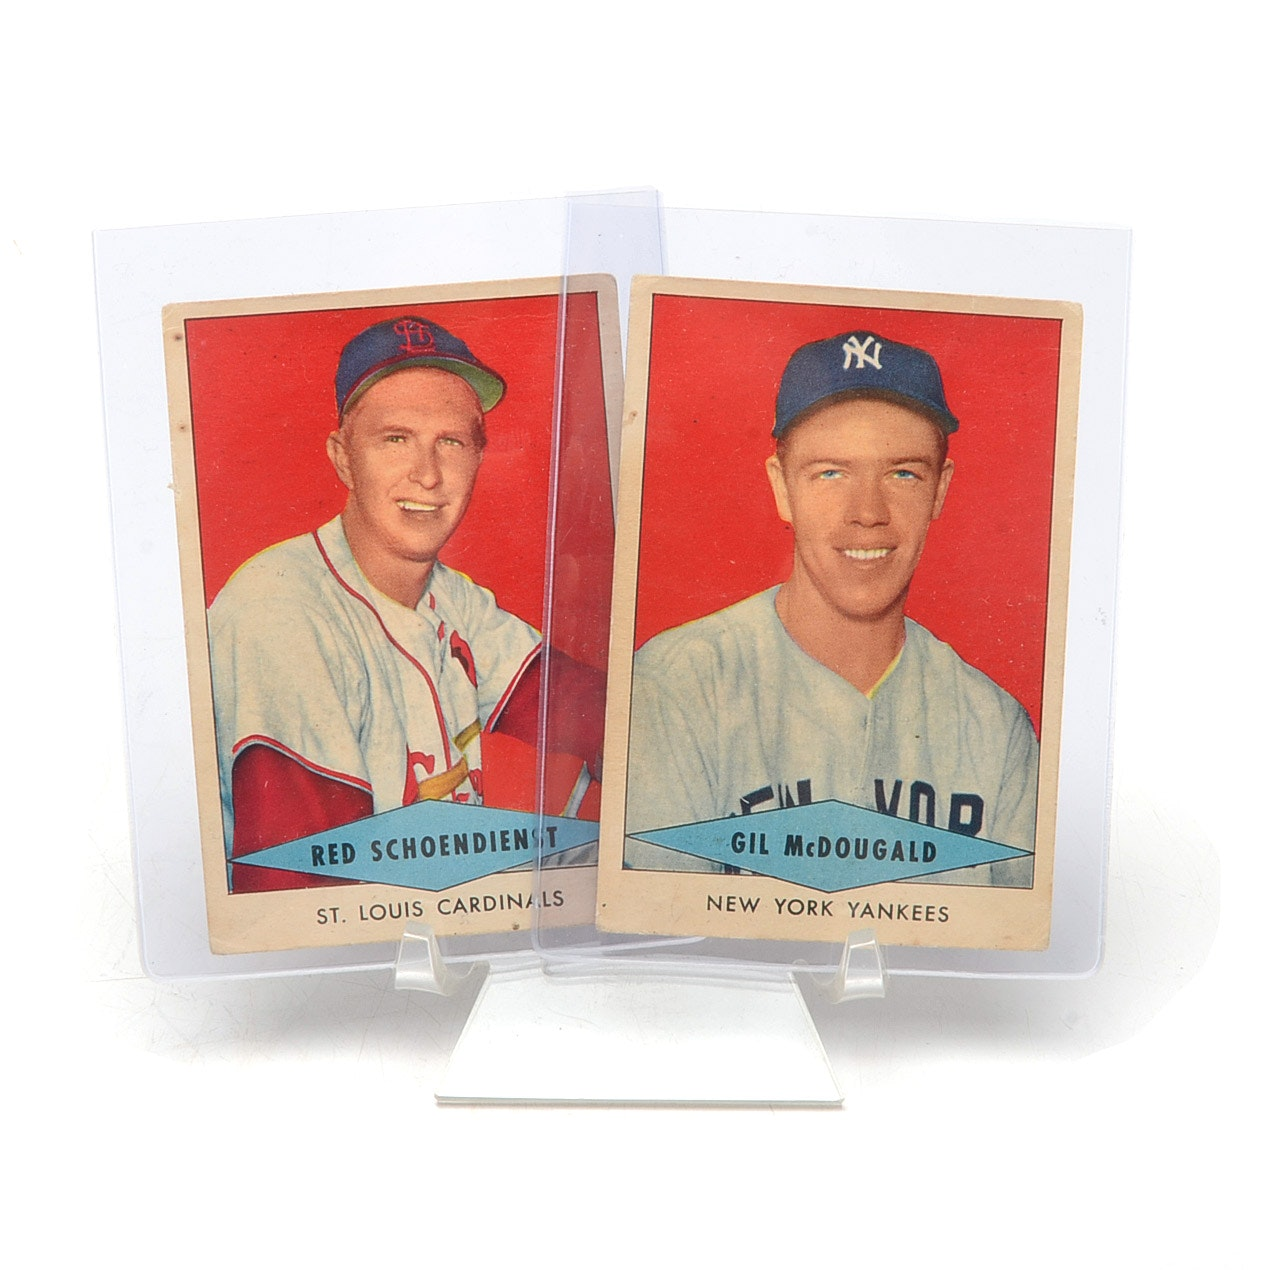 McDougald and Schoendienst 1954 Red Heart Cards